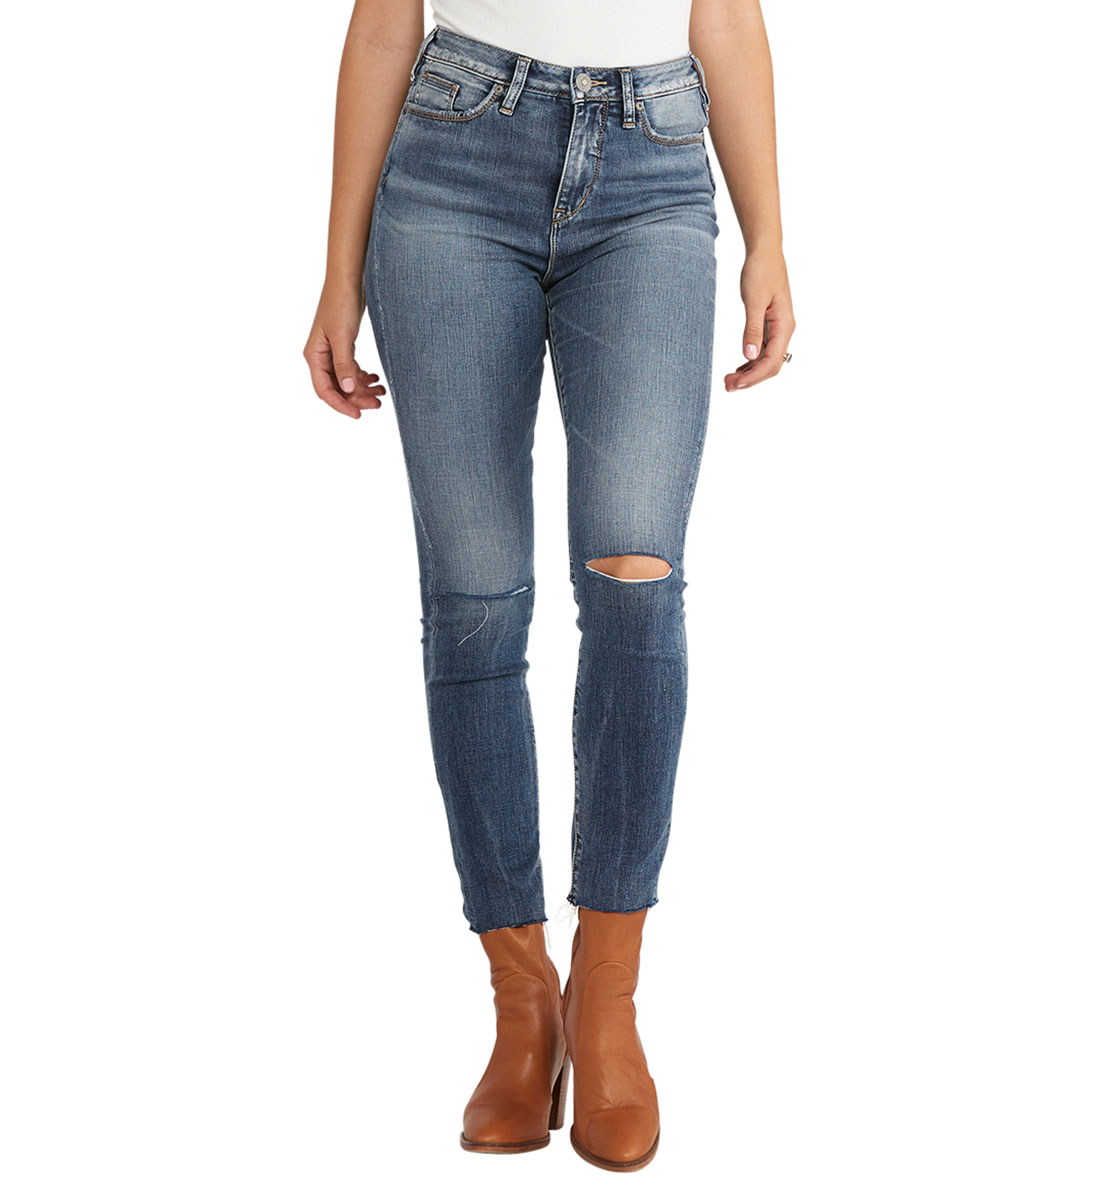 Robson Jegging Medium Wash, Indigo, hi-res